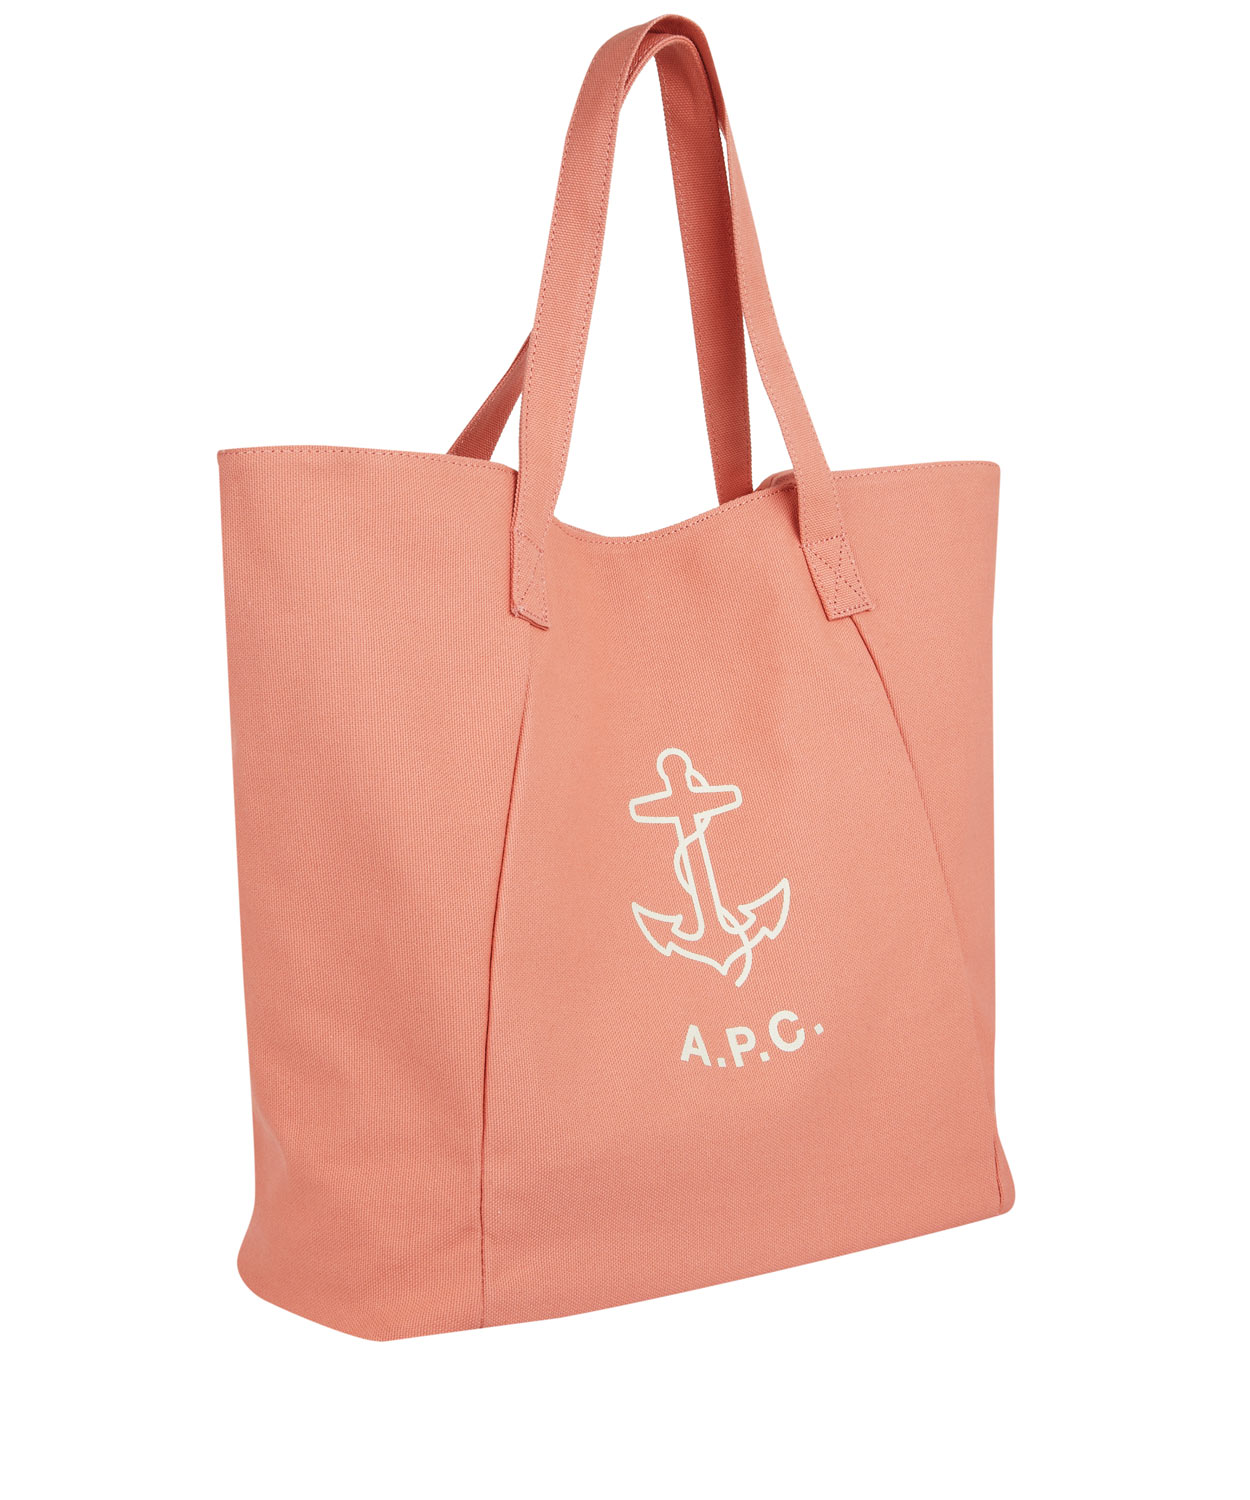 A.p.c. Pink Anchor Beach Bag in Pink | Lyst